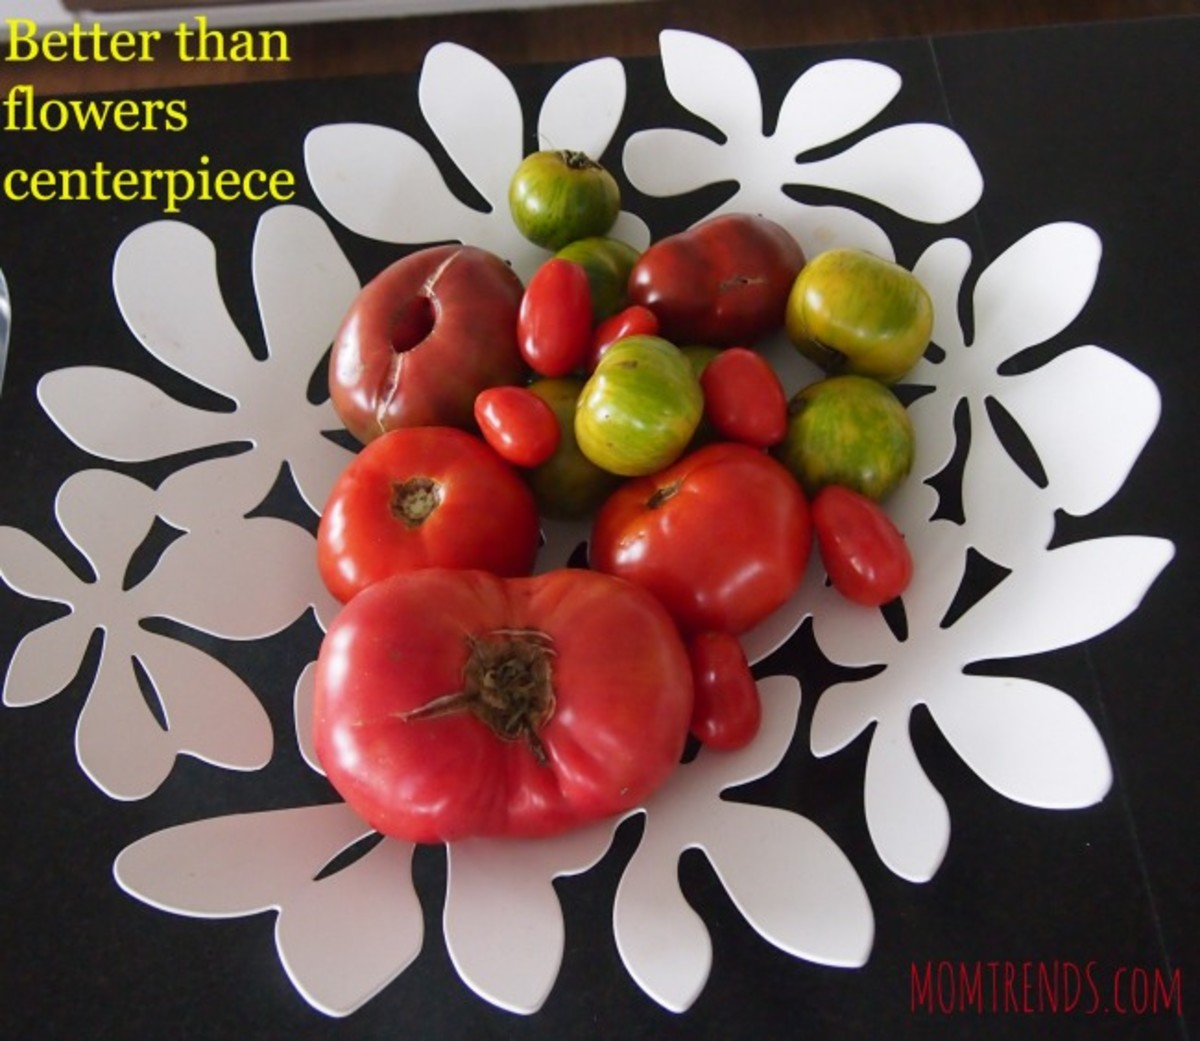 tomatoes, centerpiece, fruit centerpiece, table display with tomatoes, ikea bowl